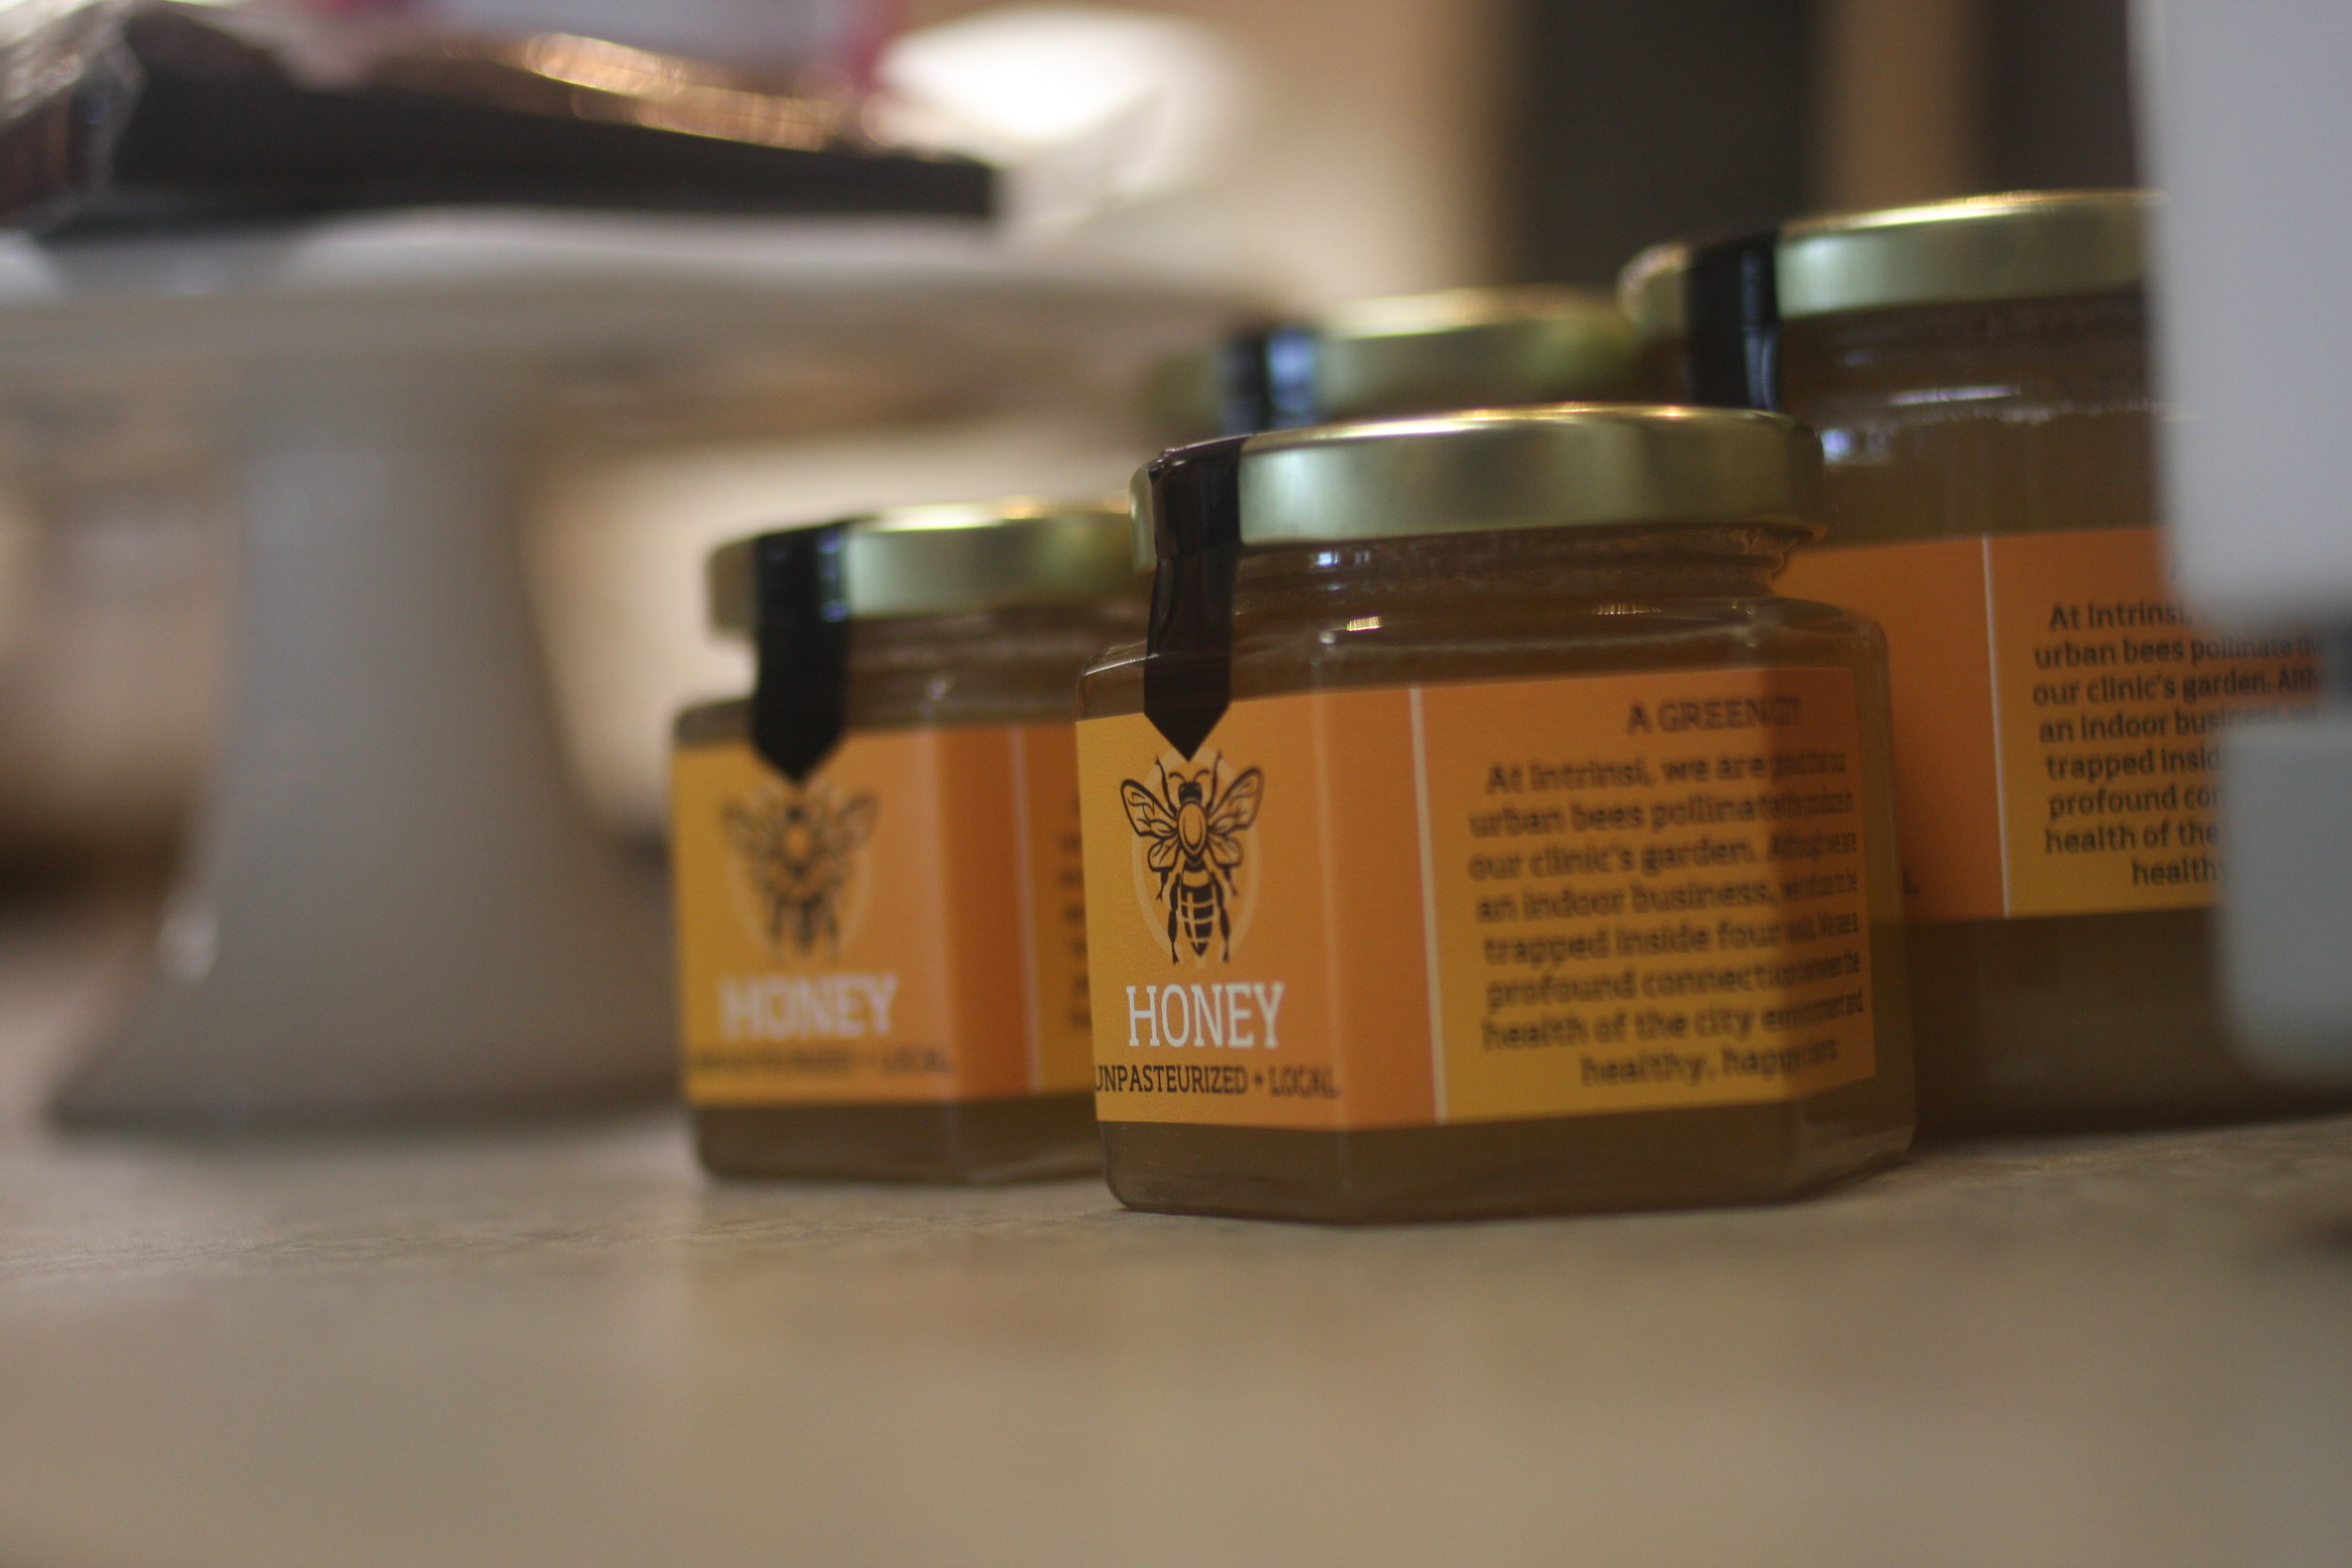 My honey ... and it's pretty labels